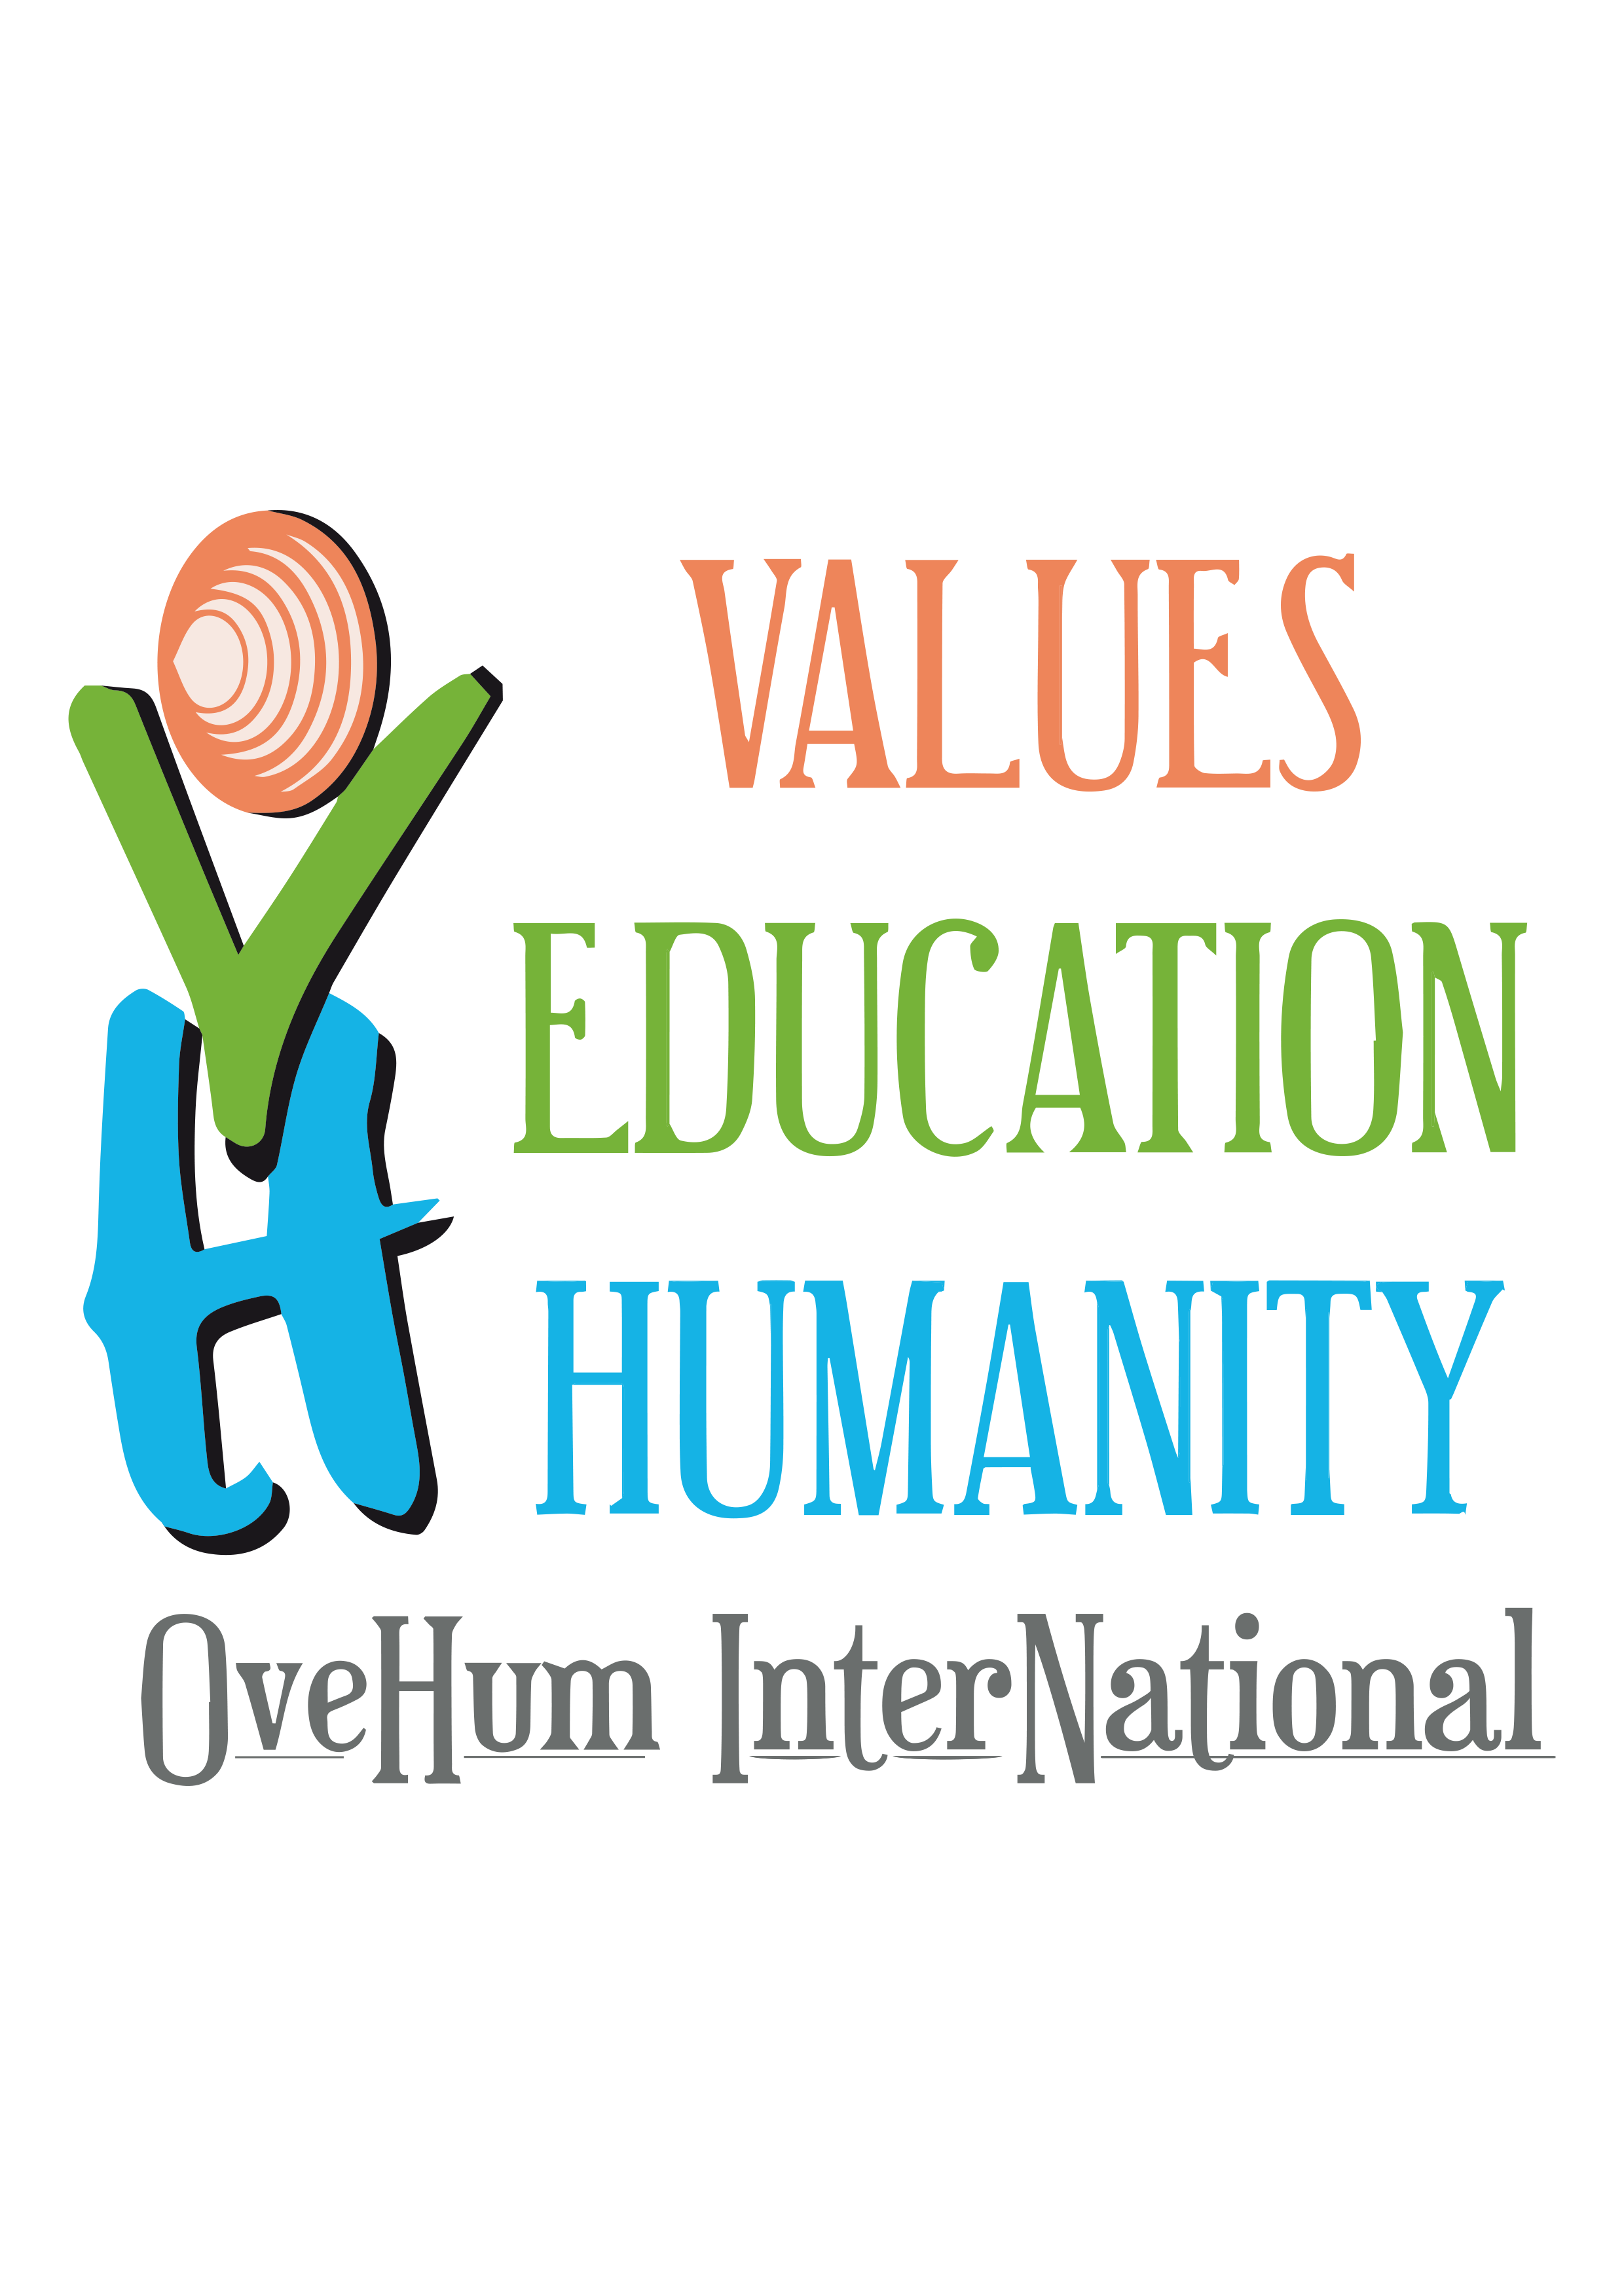 OveHum International